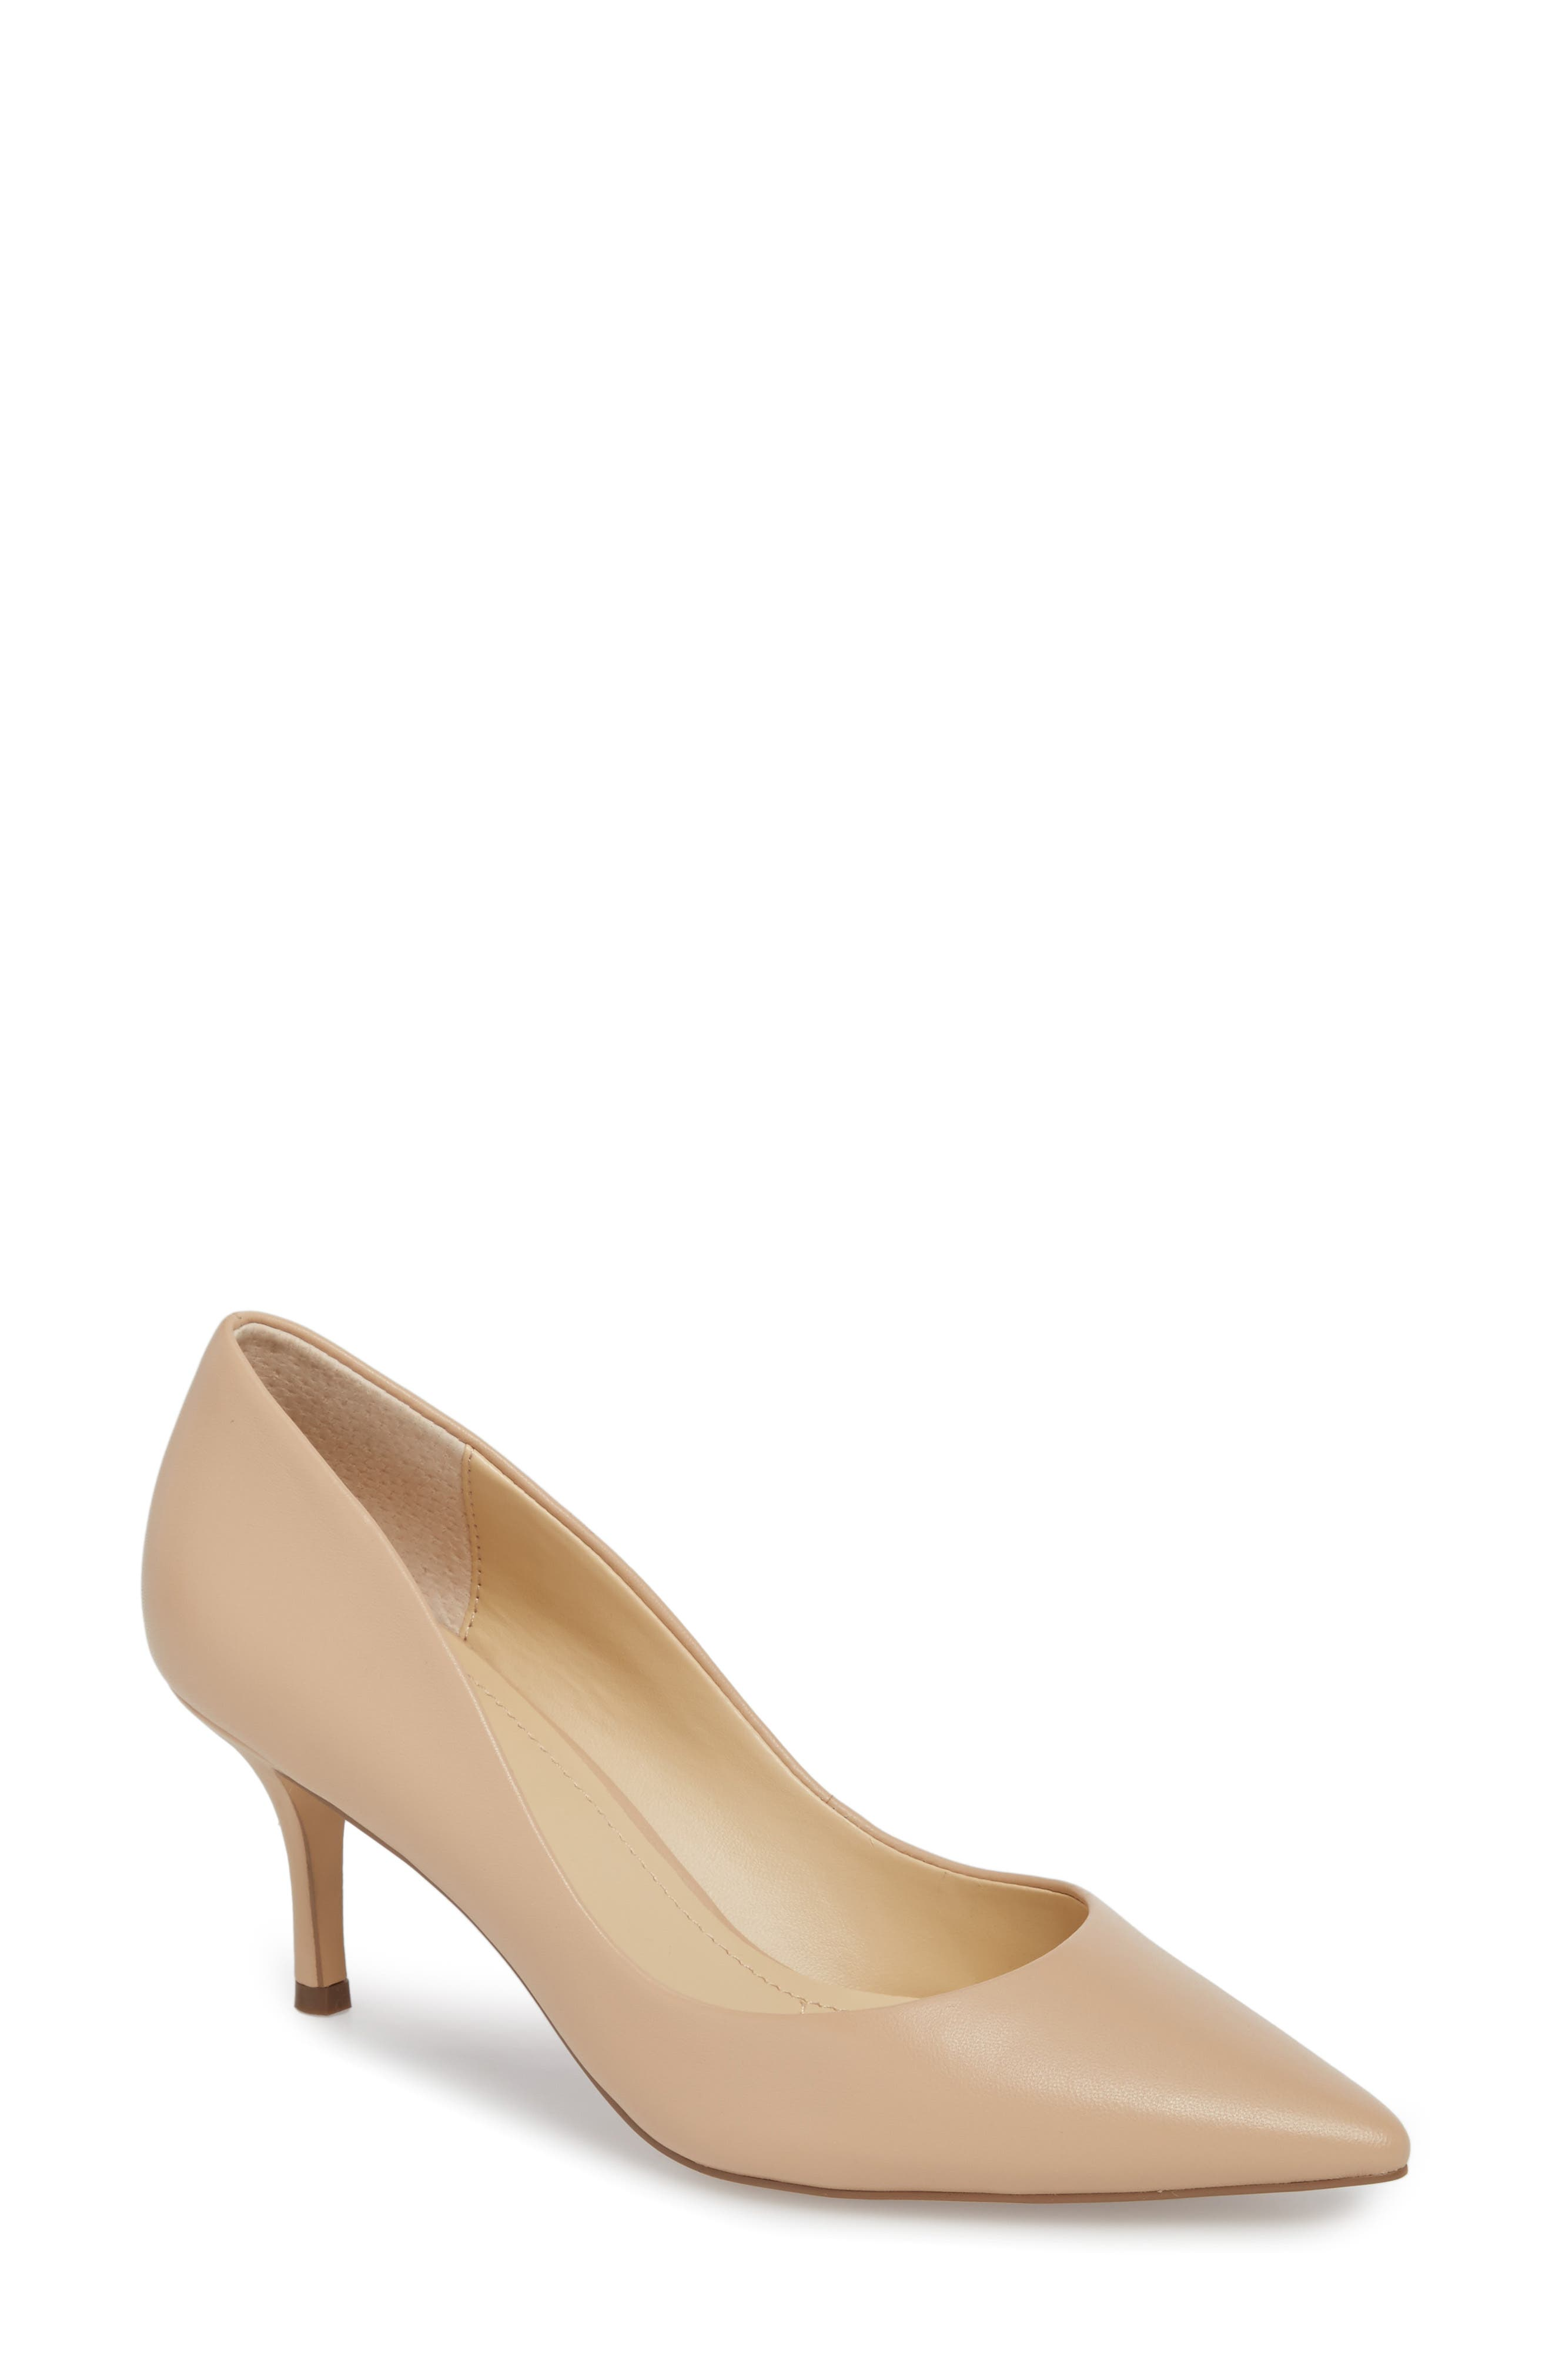 Addie Pump,                             Main thumbnail 1, color,                             Nude Leather